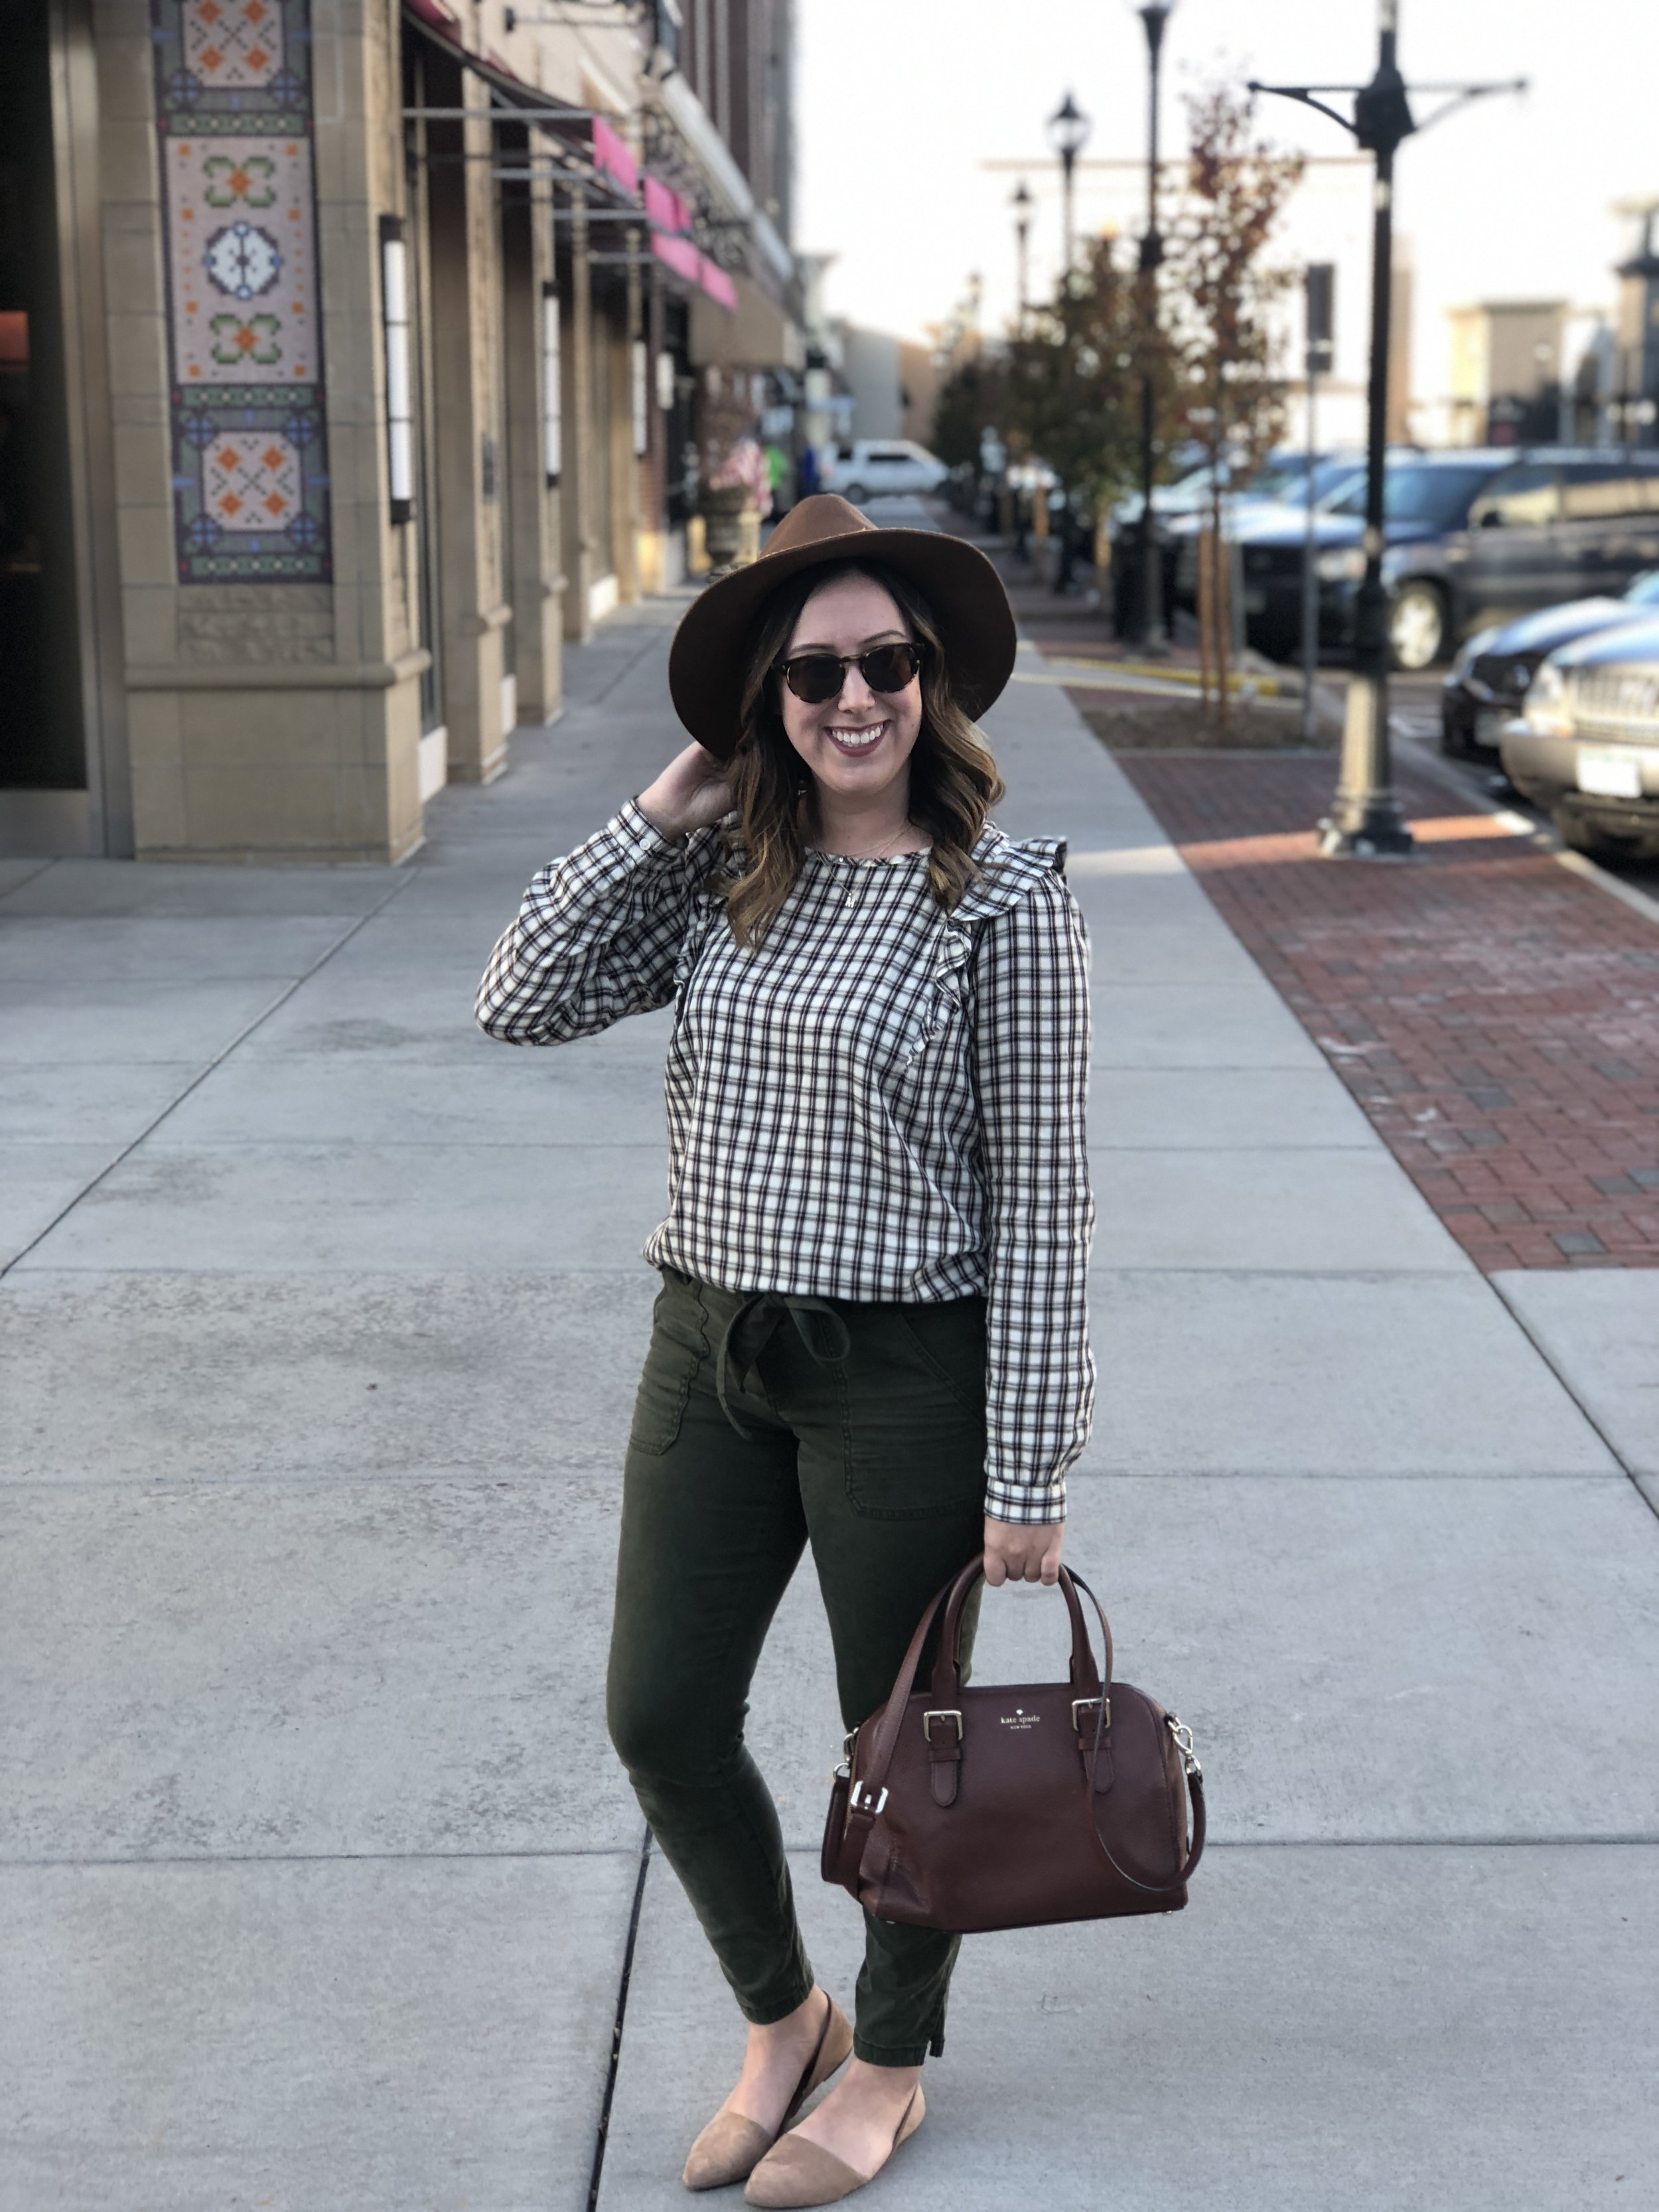 The cutest little plaid top with ruffles on the shoulder and a keyhole back!